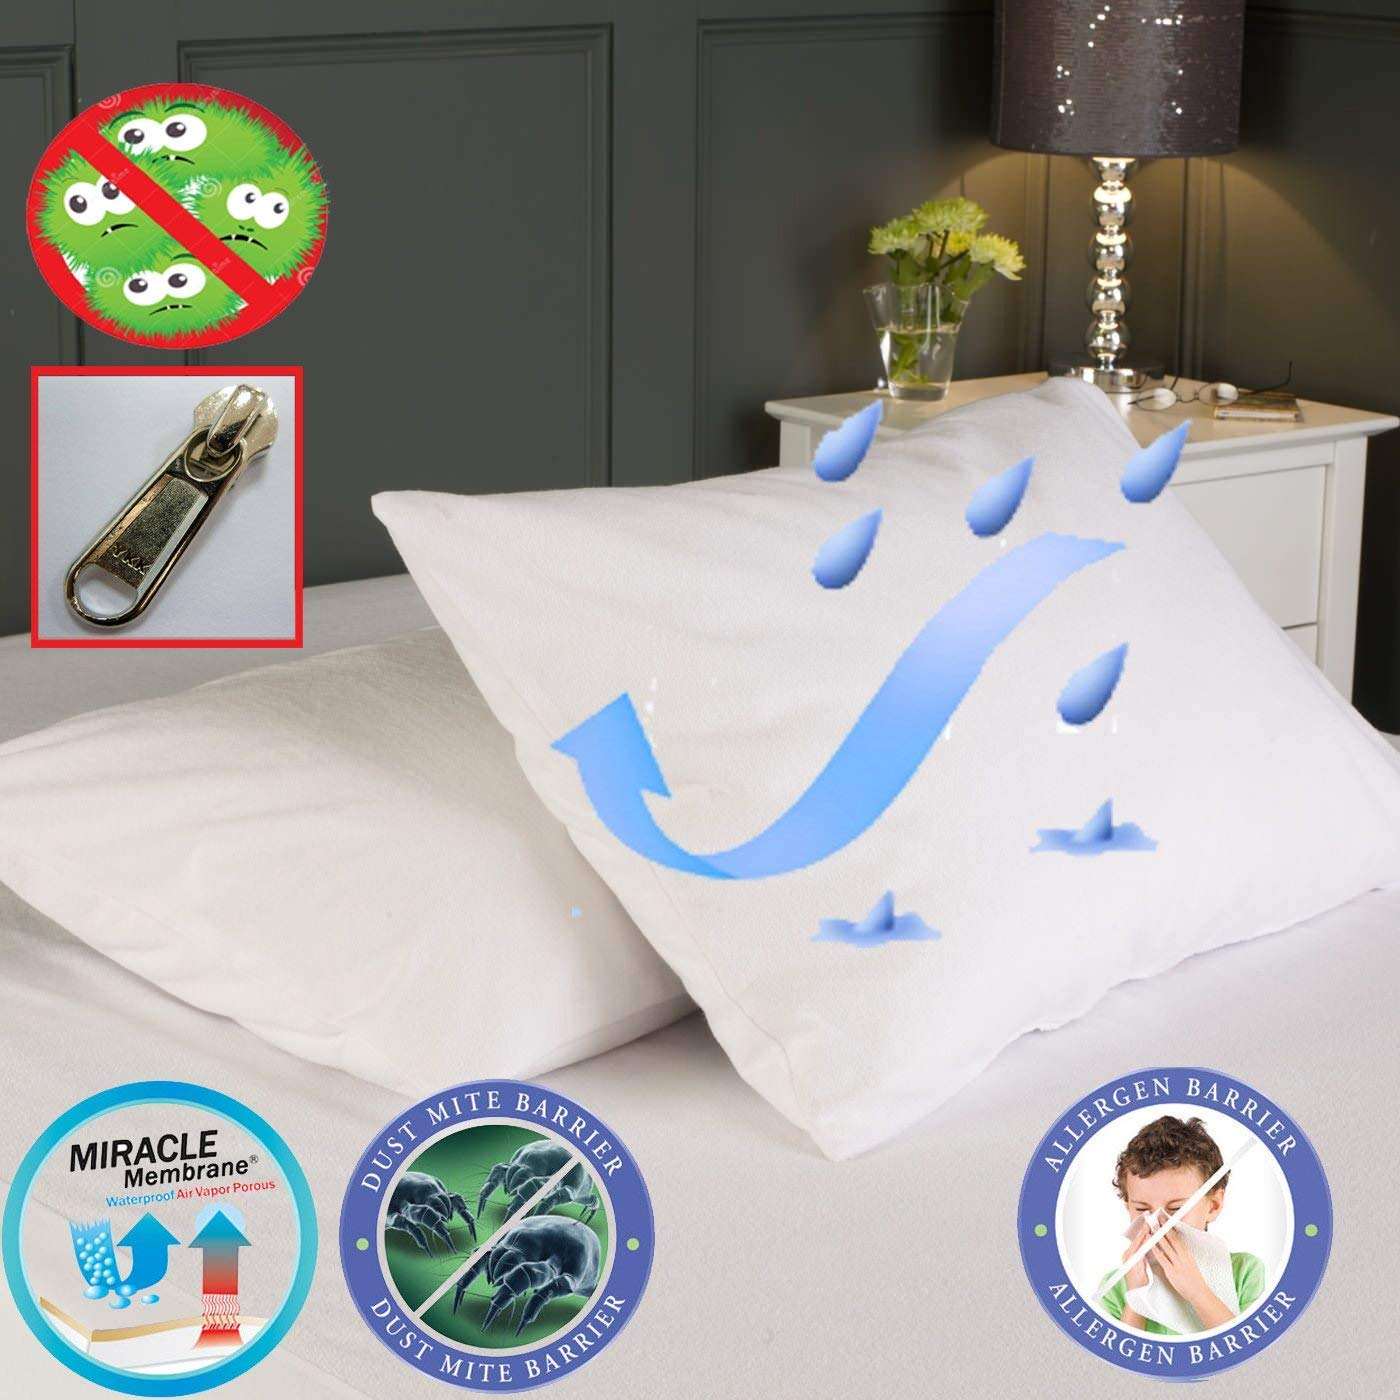 AntiAllergy Hyporallergenic Mattress Encasement Waterproof Cover Bacteria Dust Mites Protector All Uk Sizes (Bed Bug Cover, Small Double) Bedding Care Uk